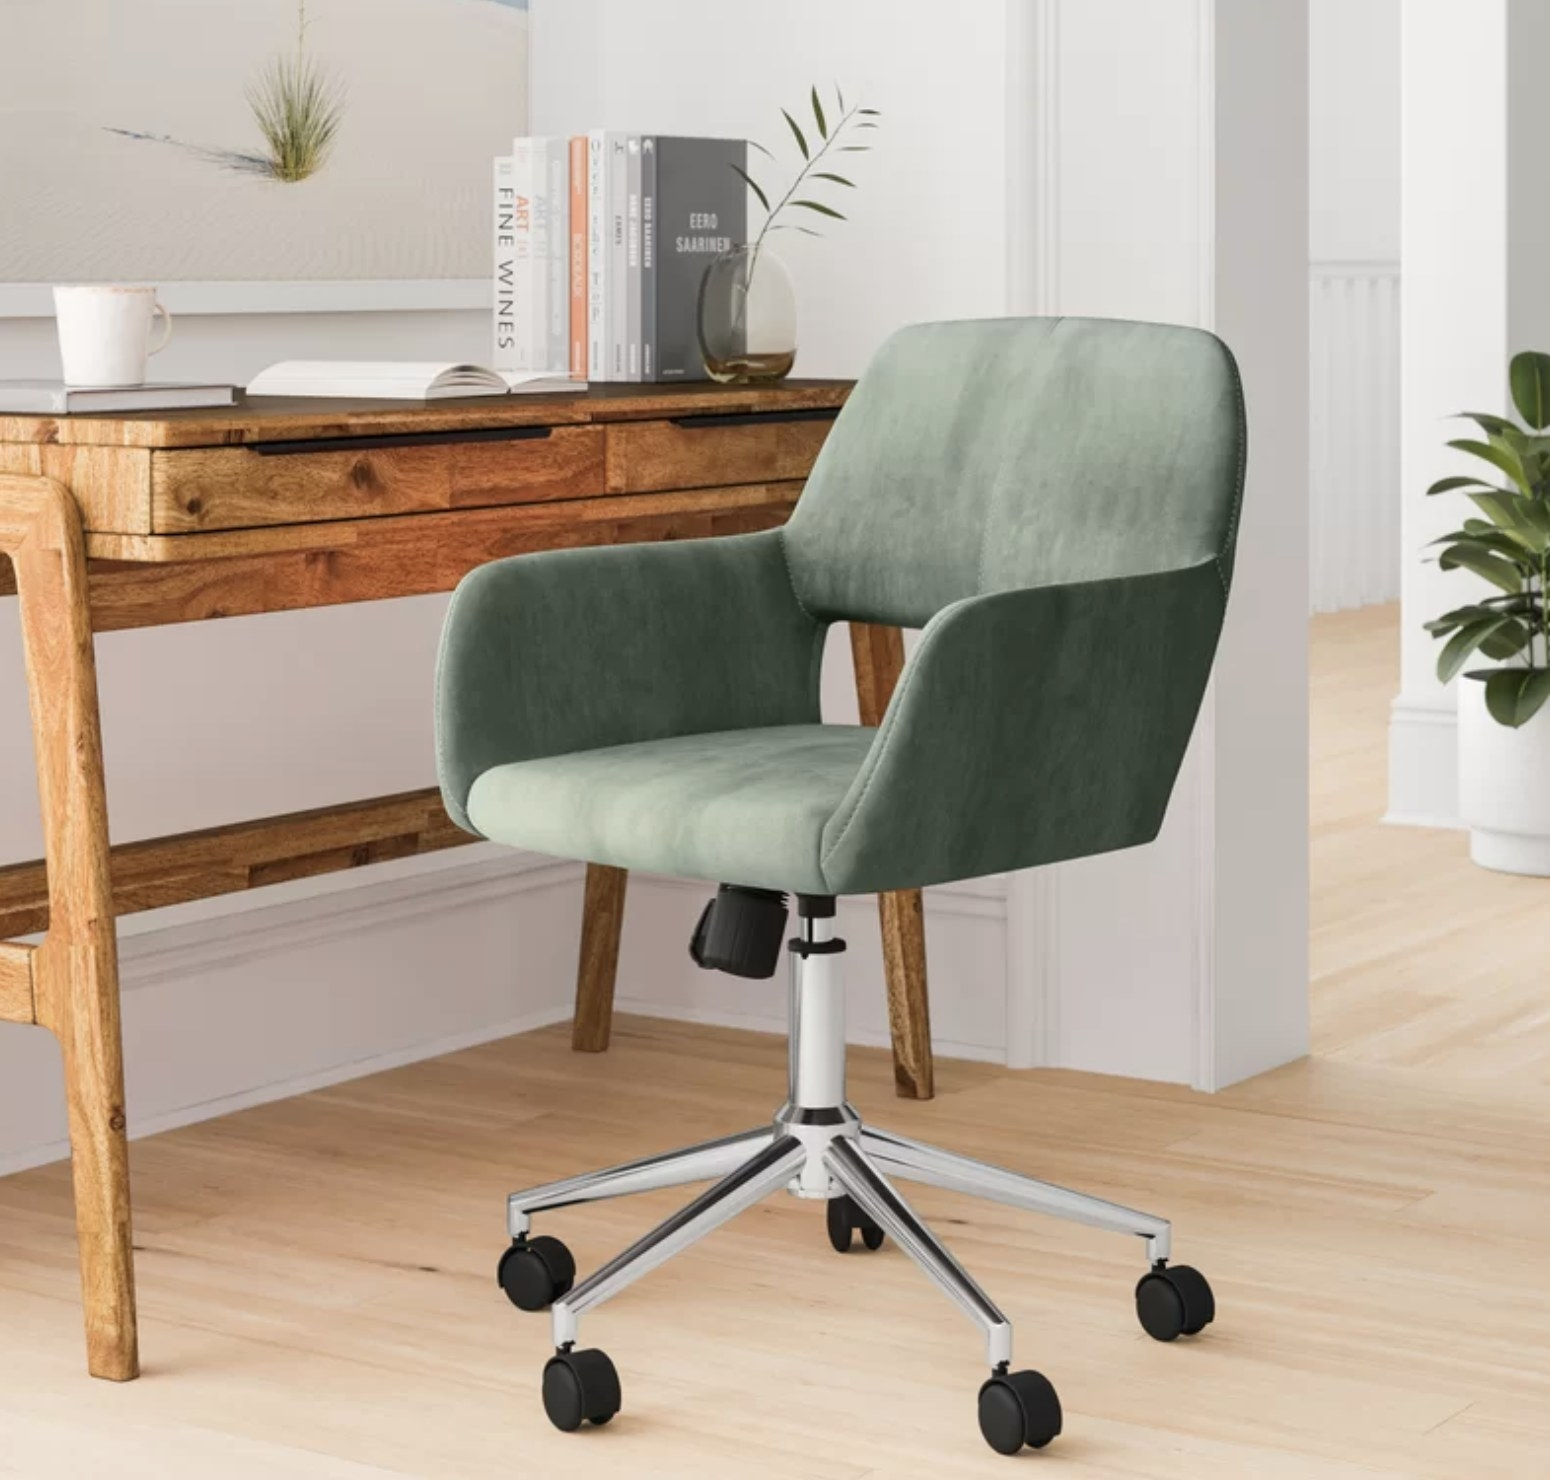 The green desk chair next to a desk